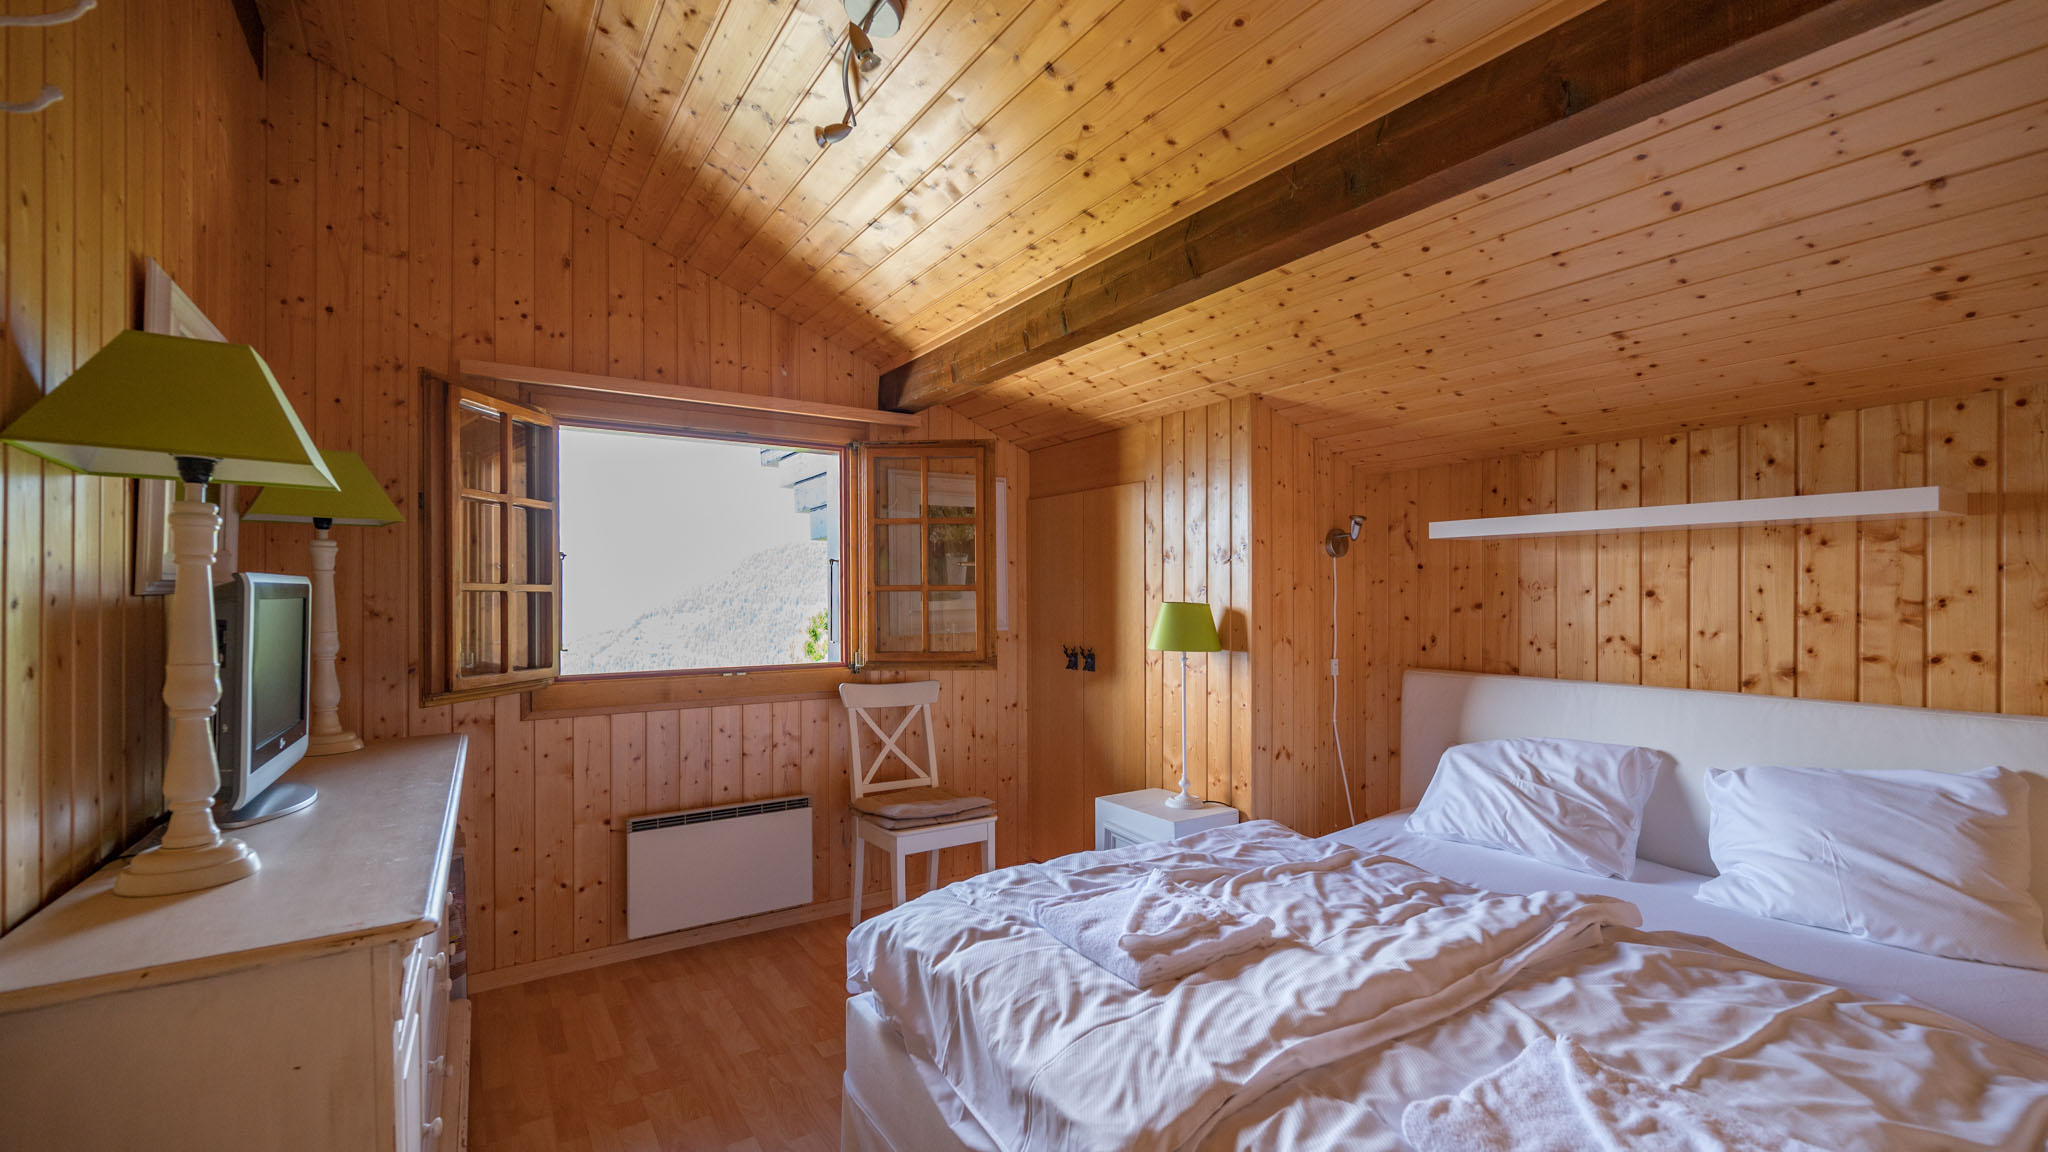 Chalet Pierre-Avoi Chalet, Switzerland